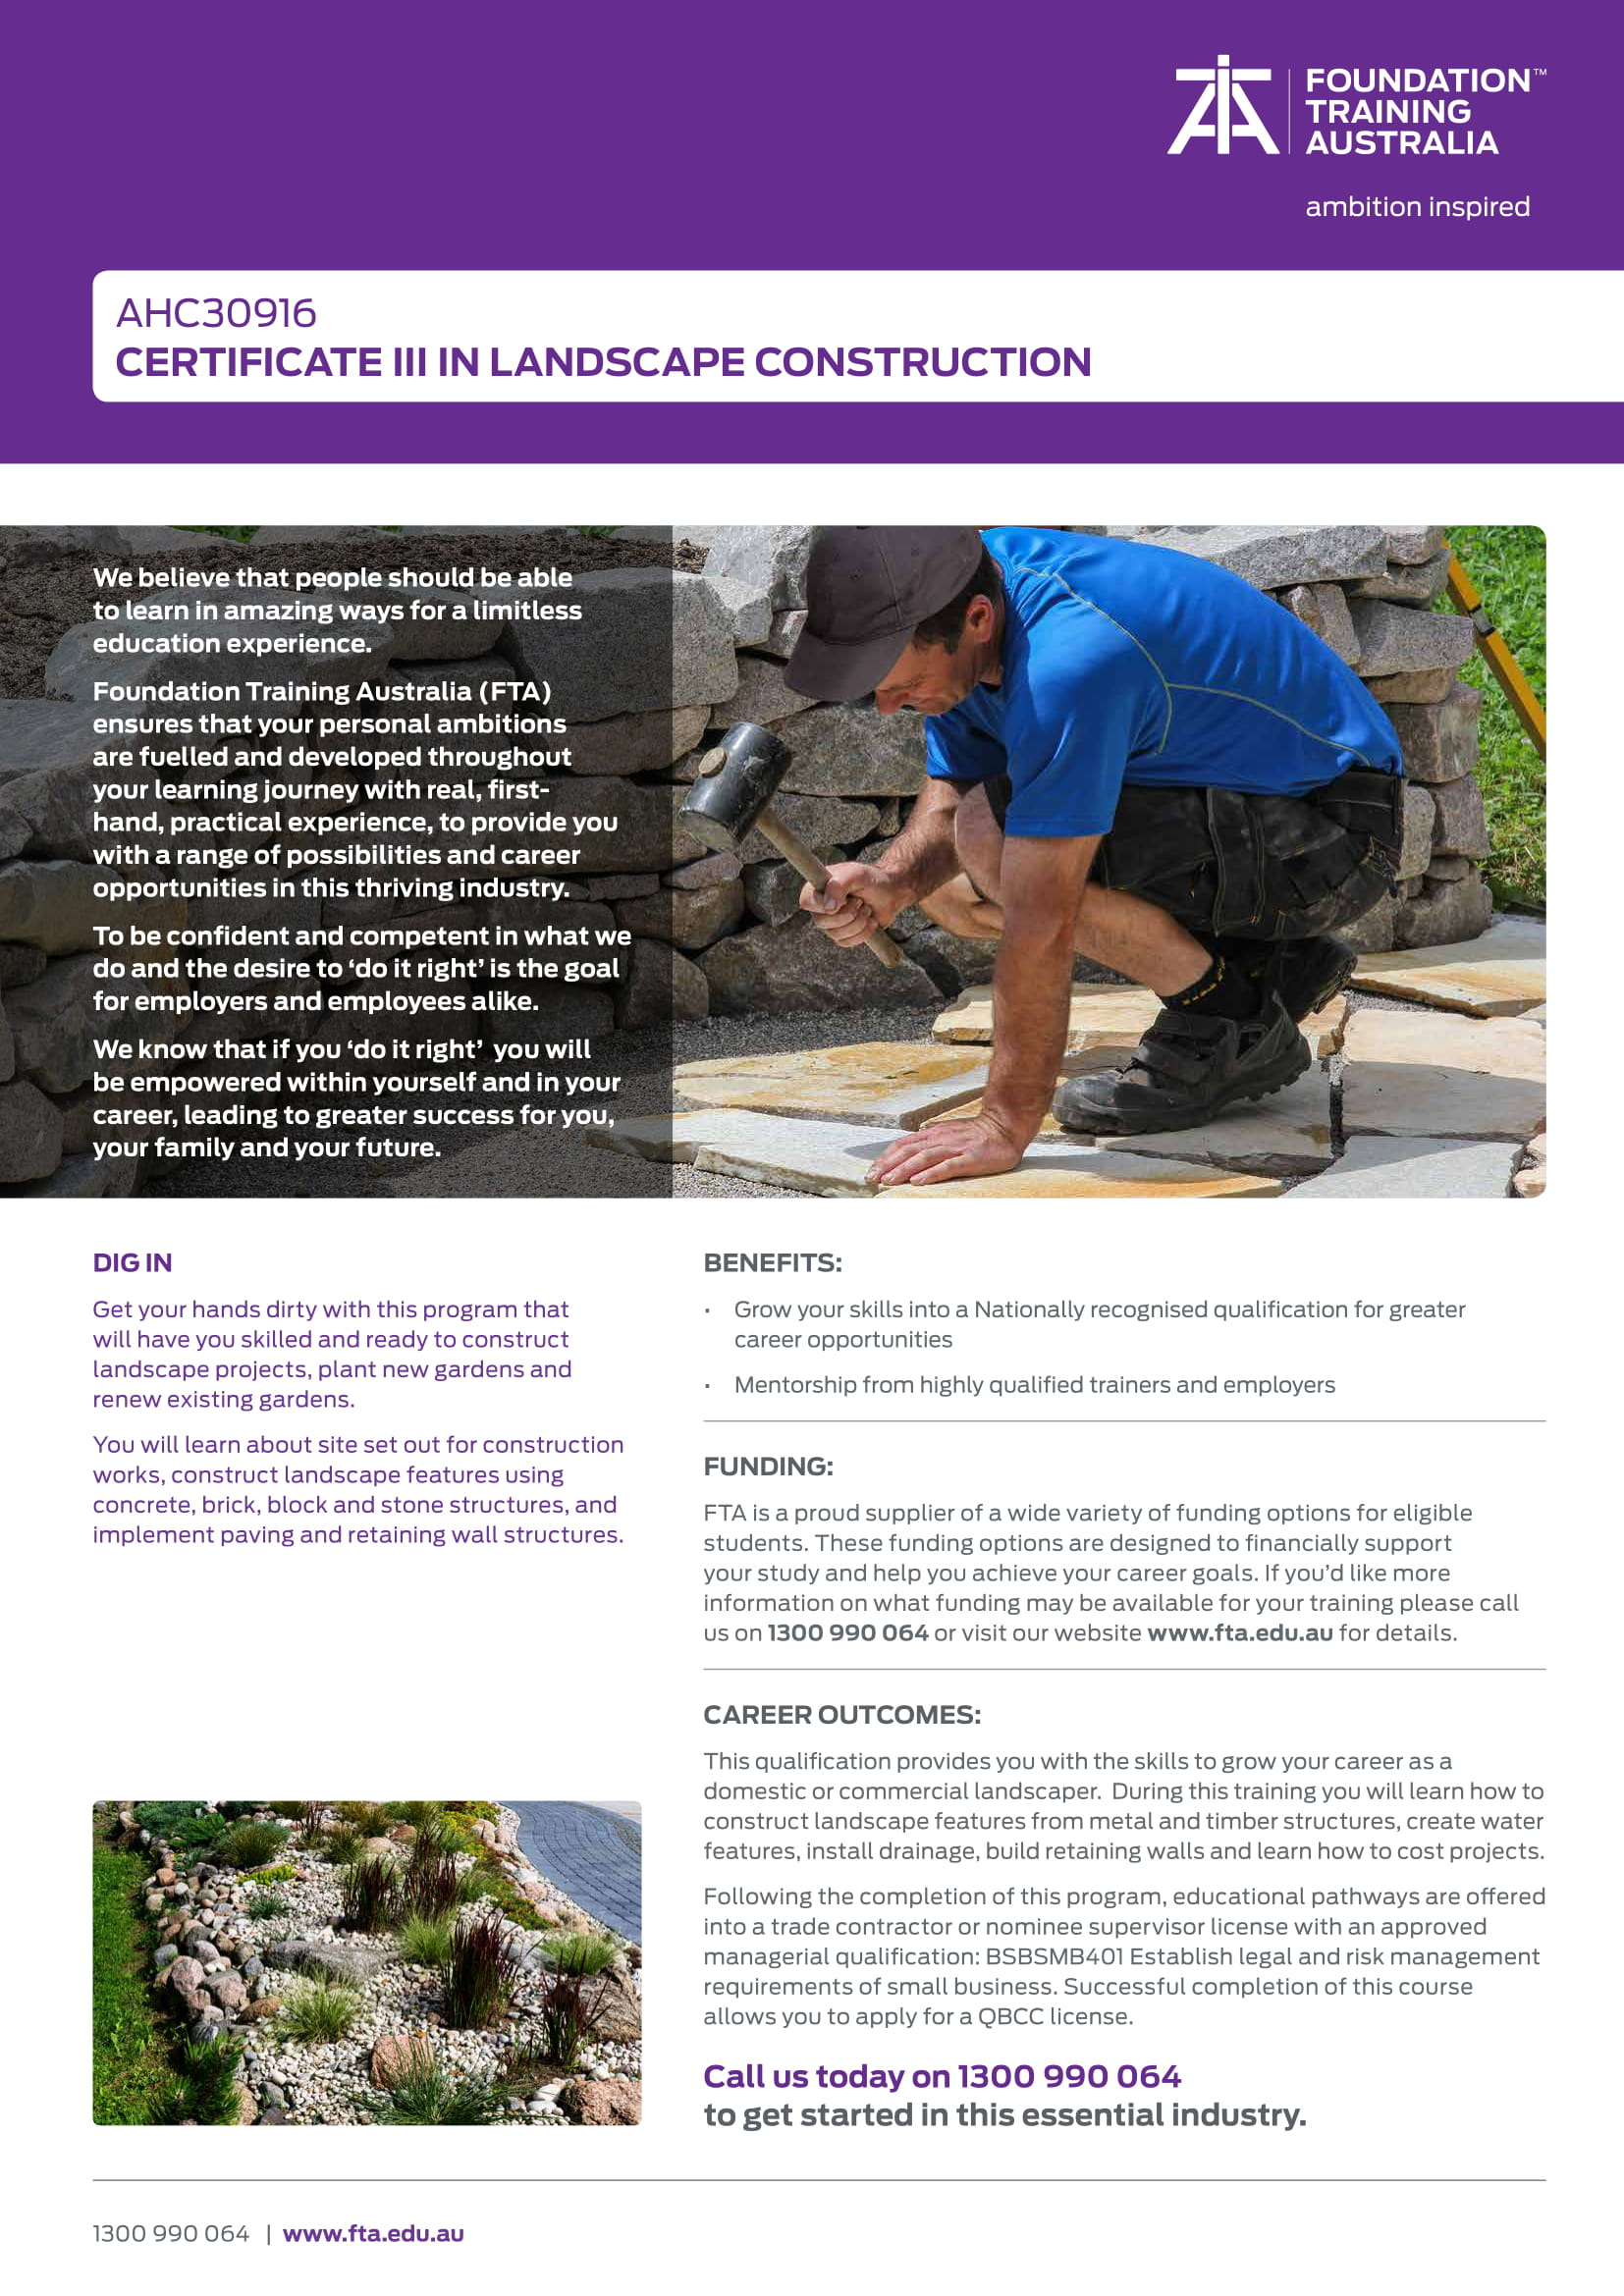 https://www.fta.edu.au/wp-content/uploads/2020/06/TP1.MK_.010-Certificate-III-Landscape-Construction-Course-Flyer-AHC30916-V4-DIGITAL-1.jpg